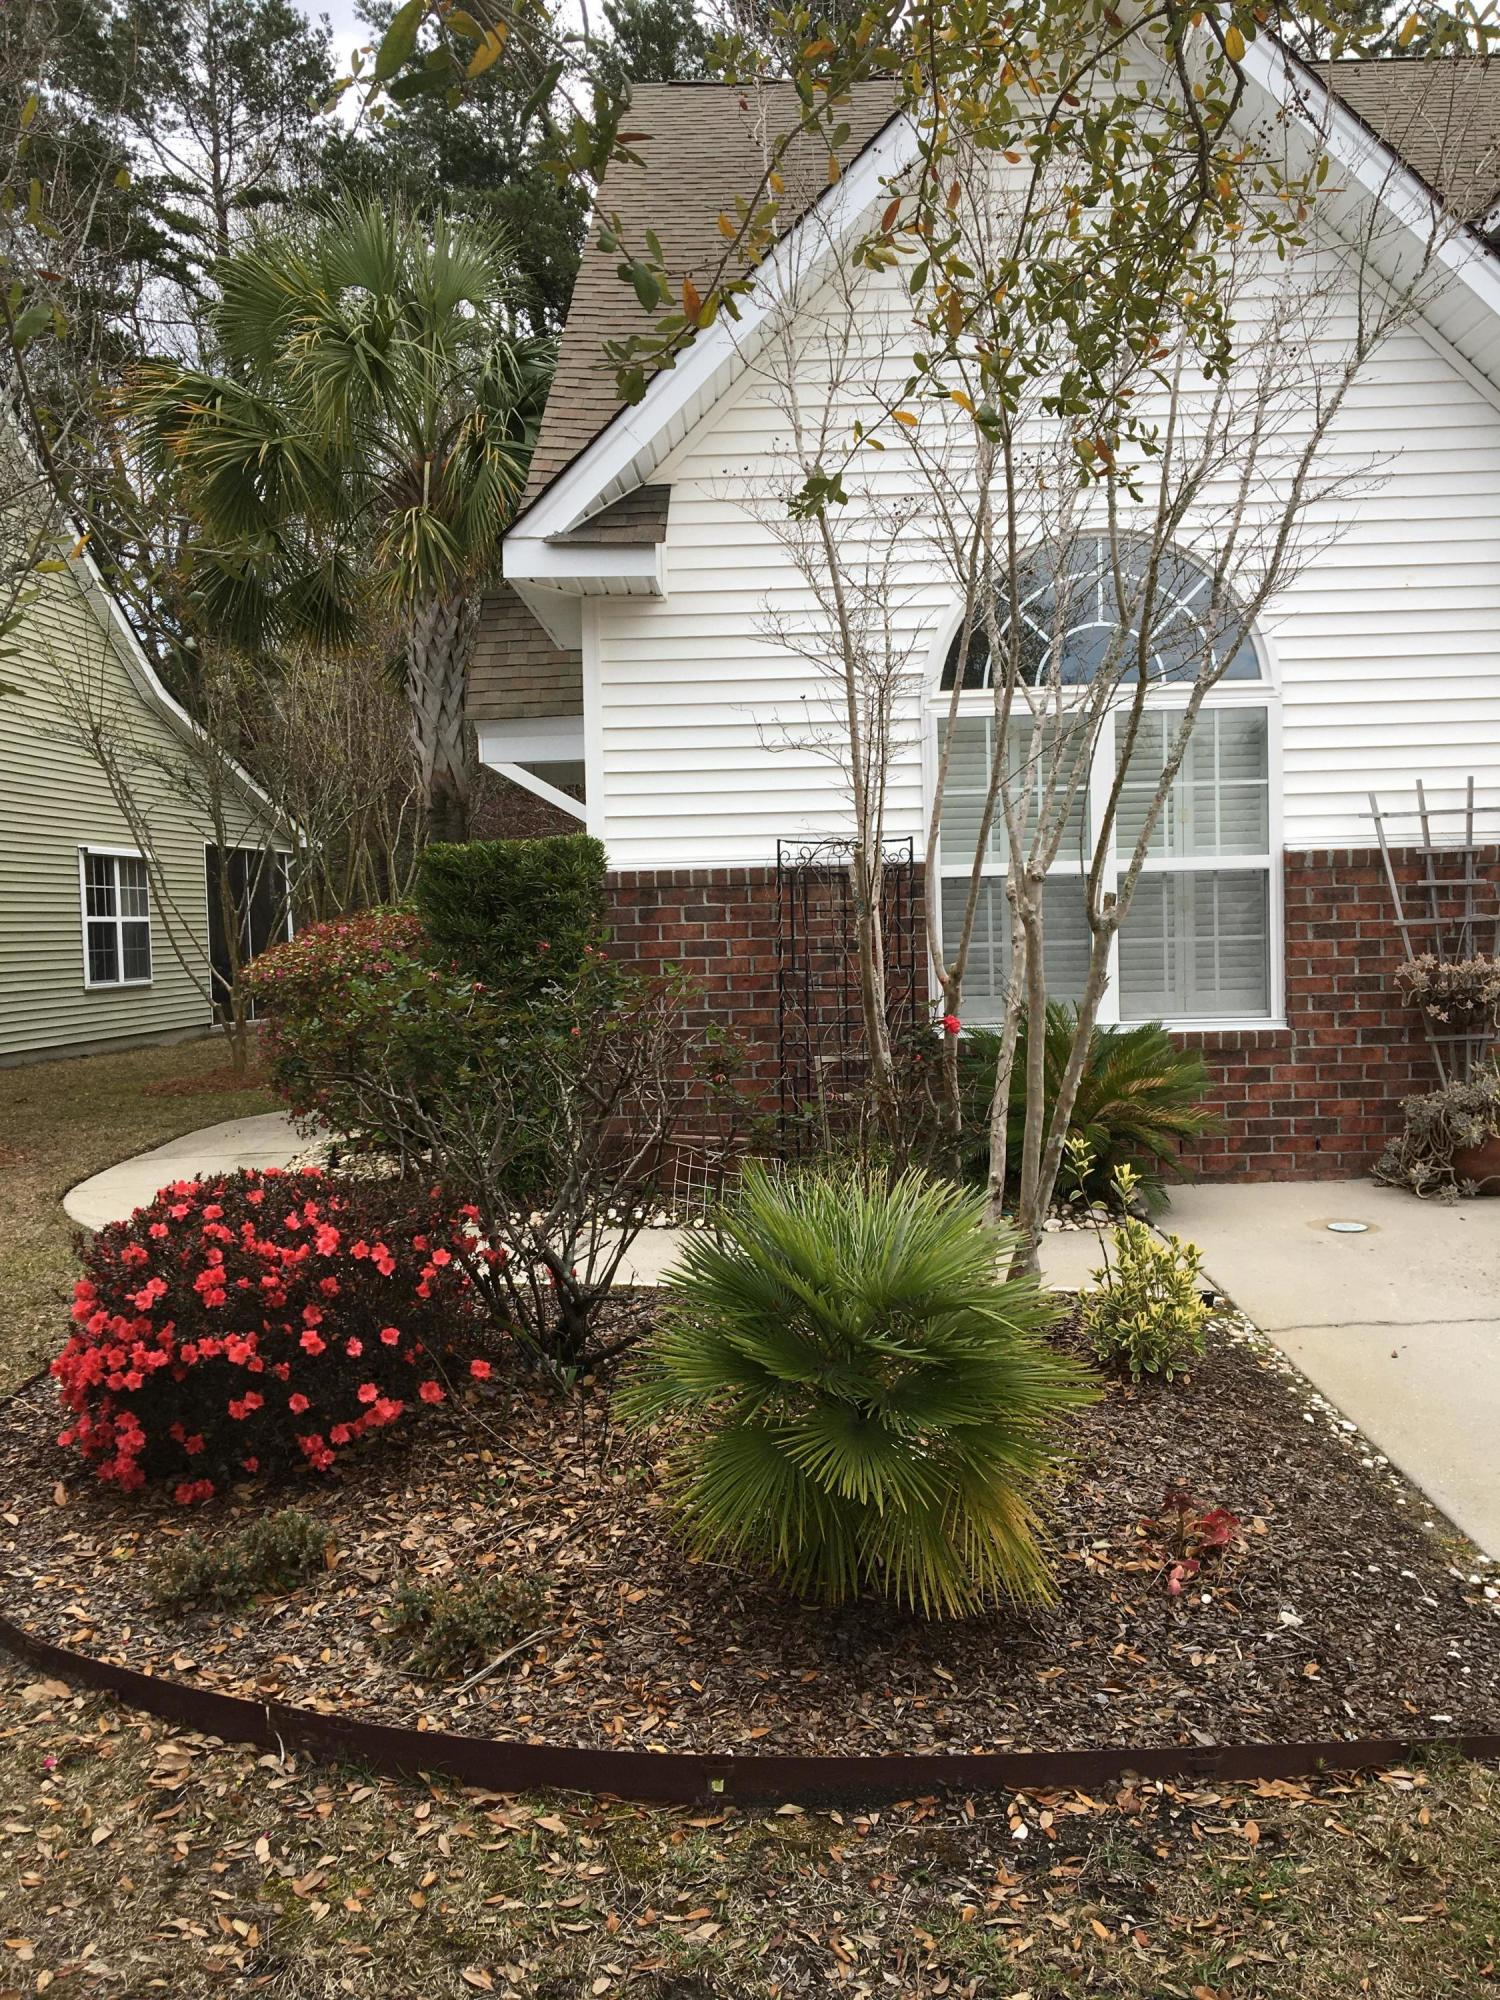 Coosaw Commons Homes For Sale - 8731 Grassy Oak Trail, North Charleston, SC - 28